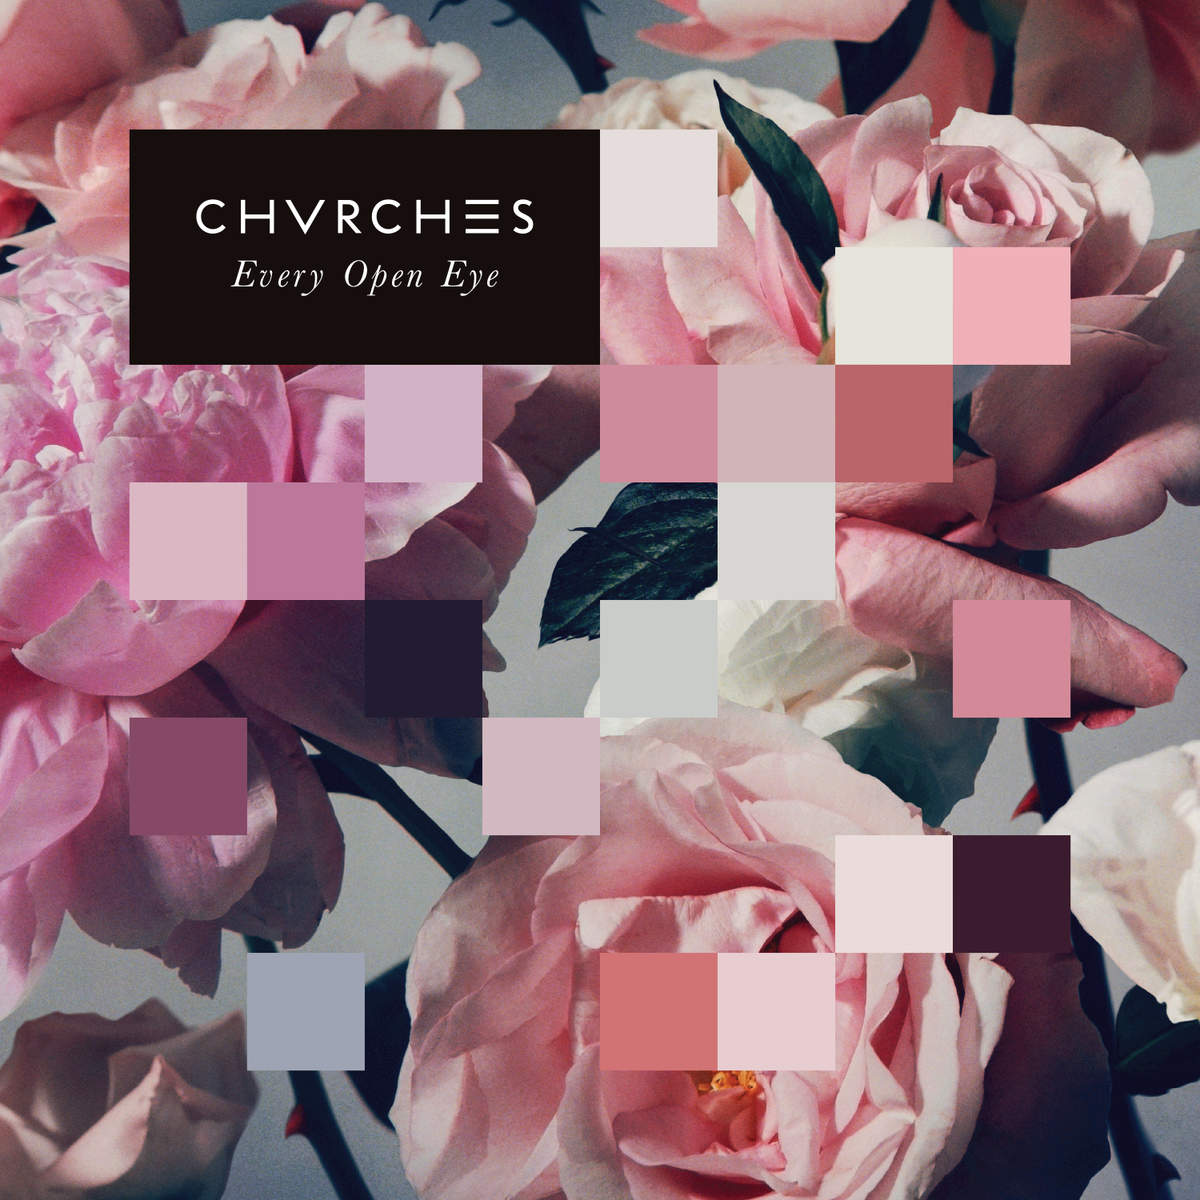 The album art for CHVRCHES new album